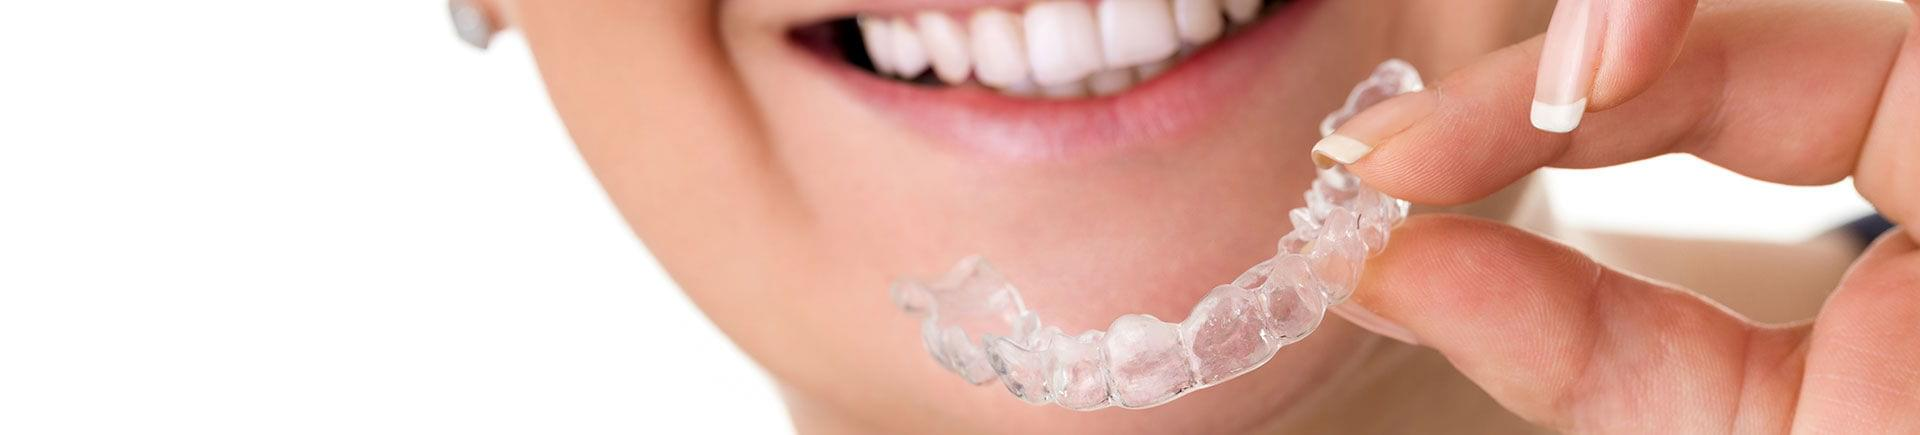 A woman holding an Invisalign aligner .